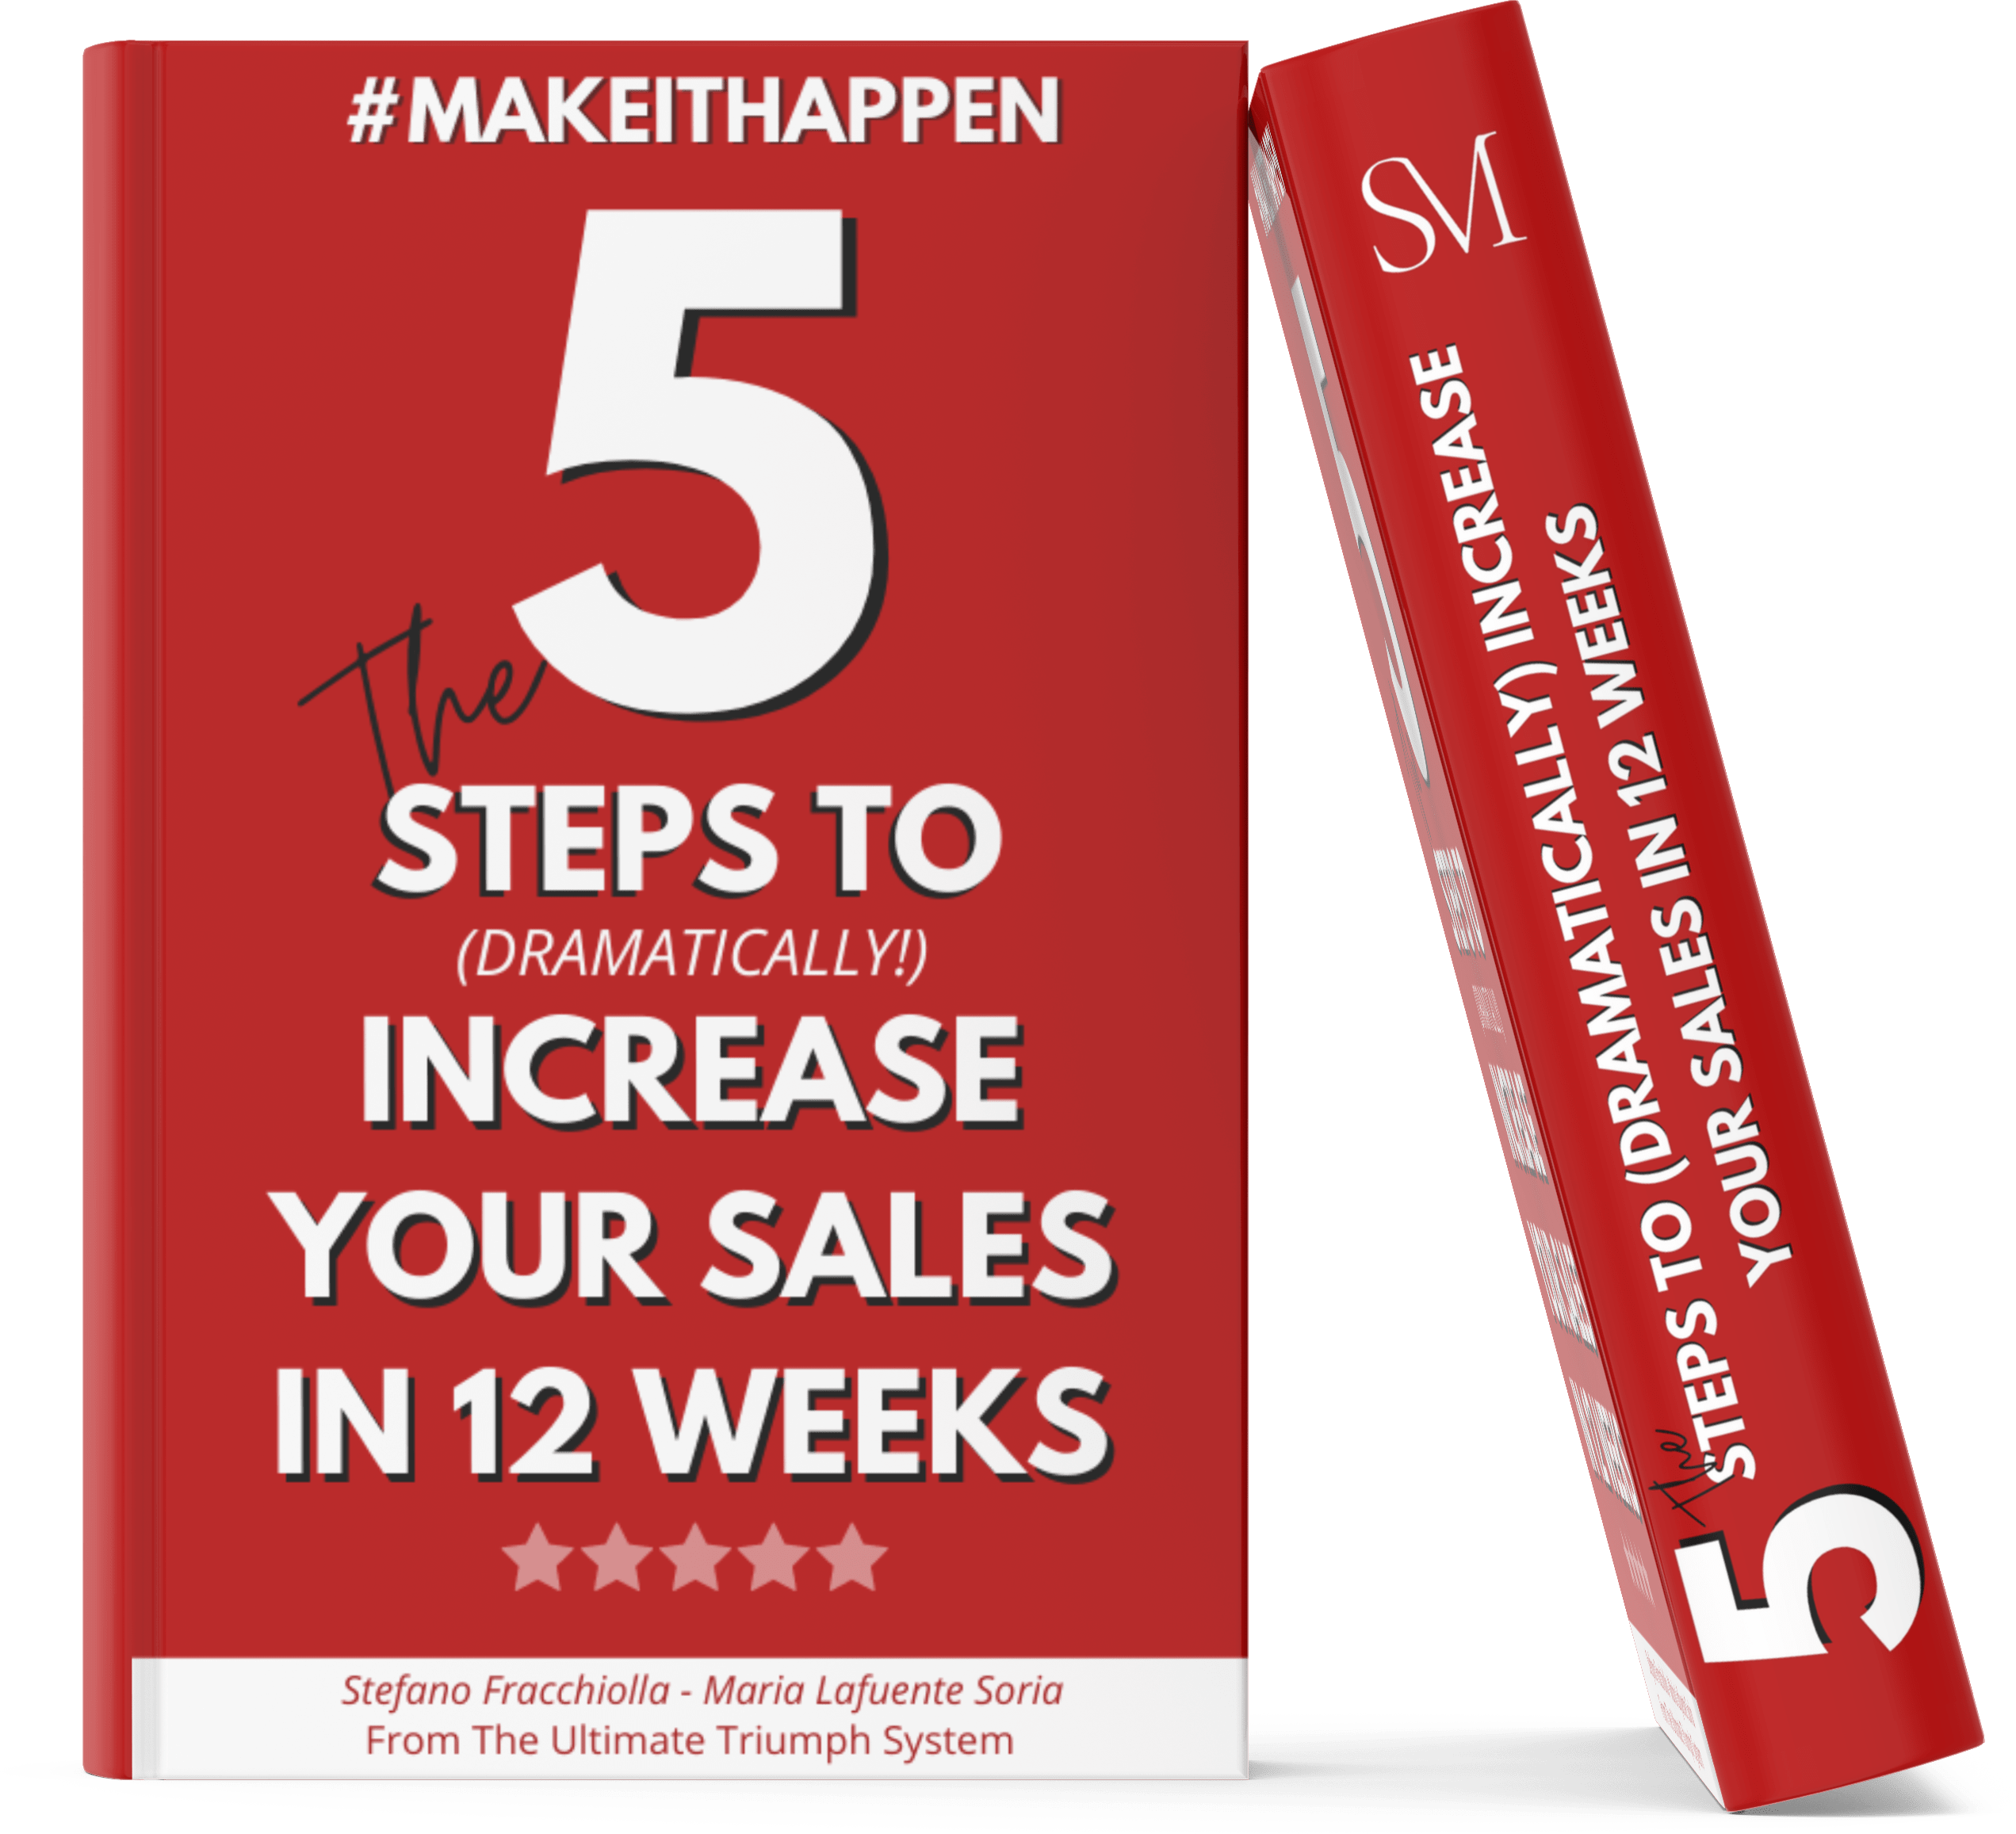 strategy-on-how-to-increase-sales